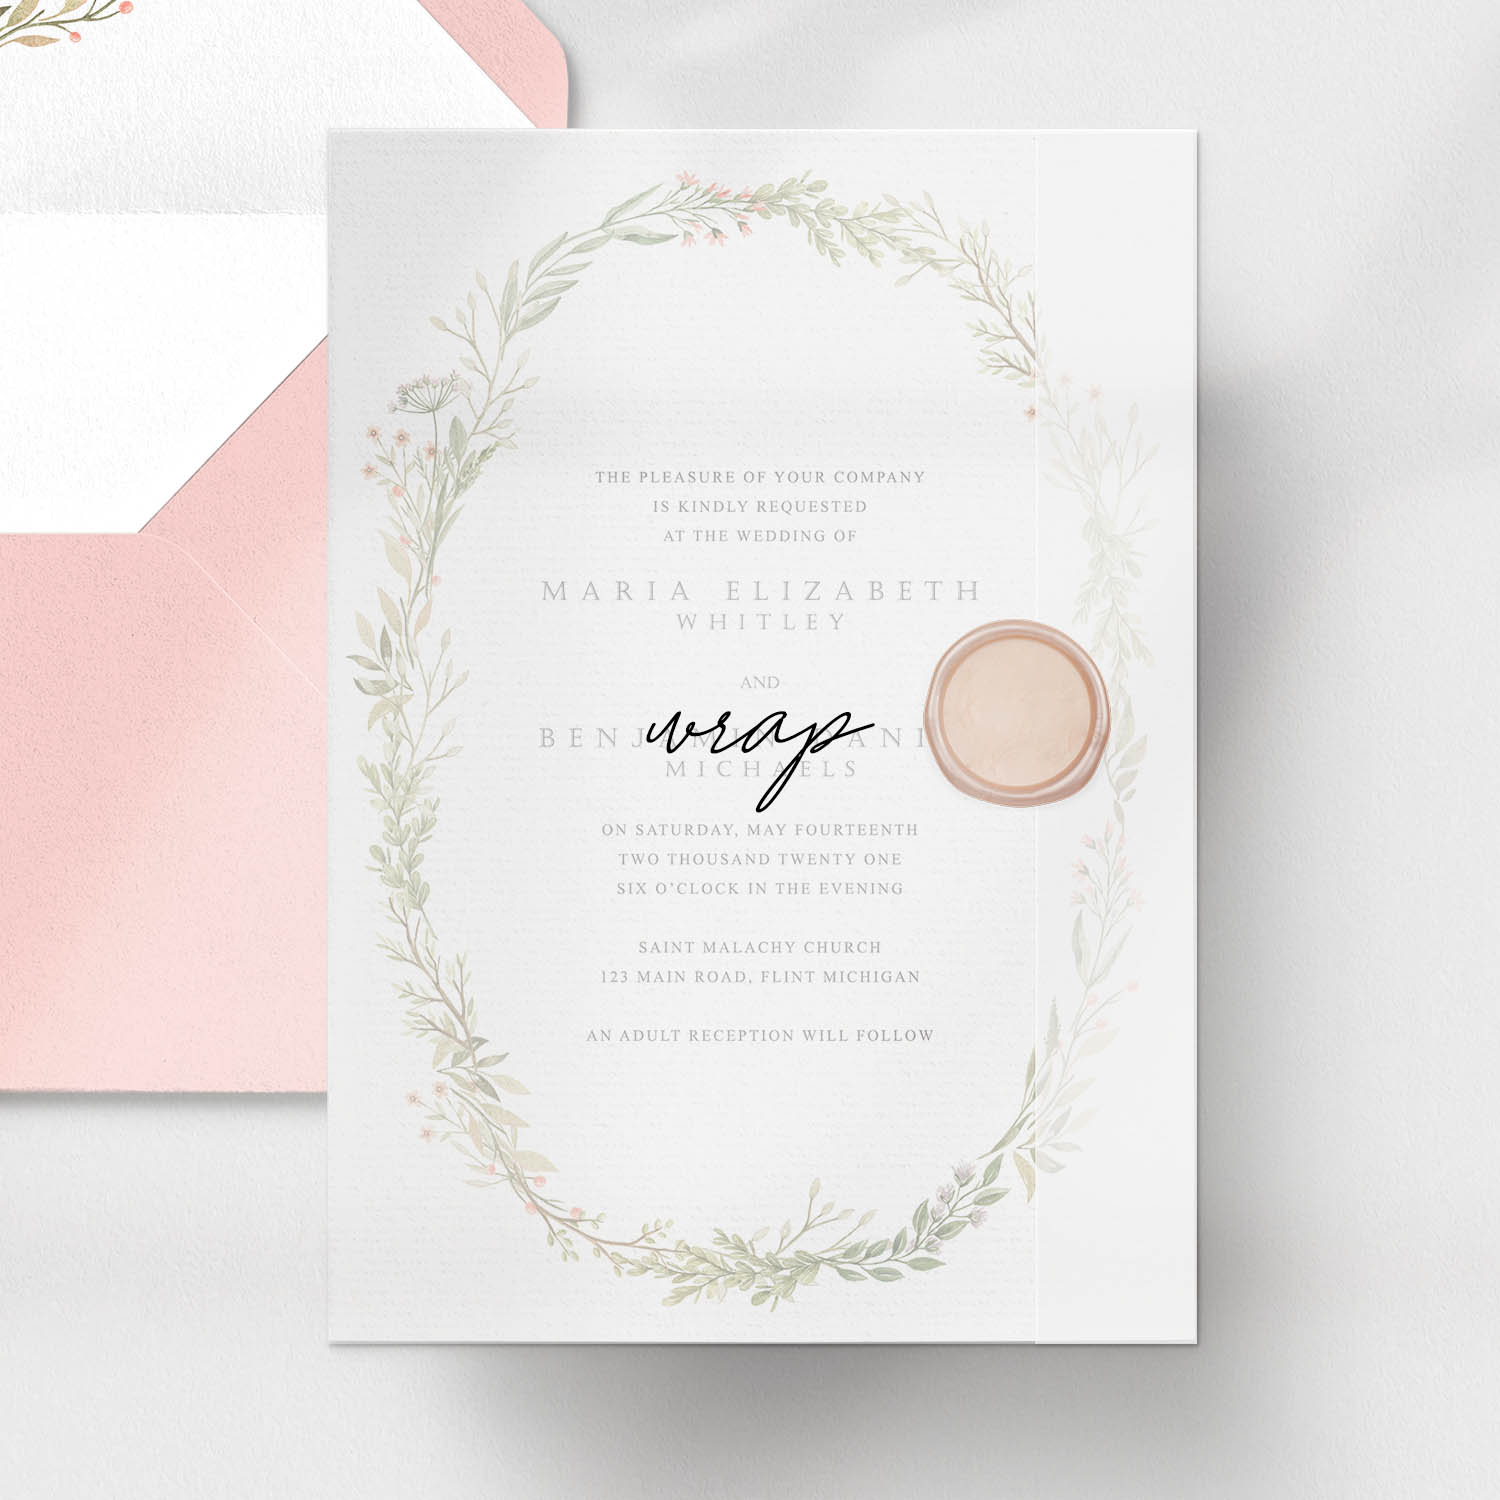 invitation card with wrap